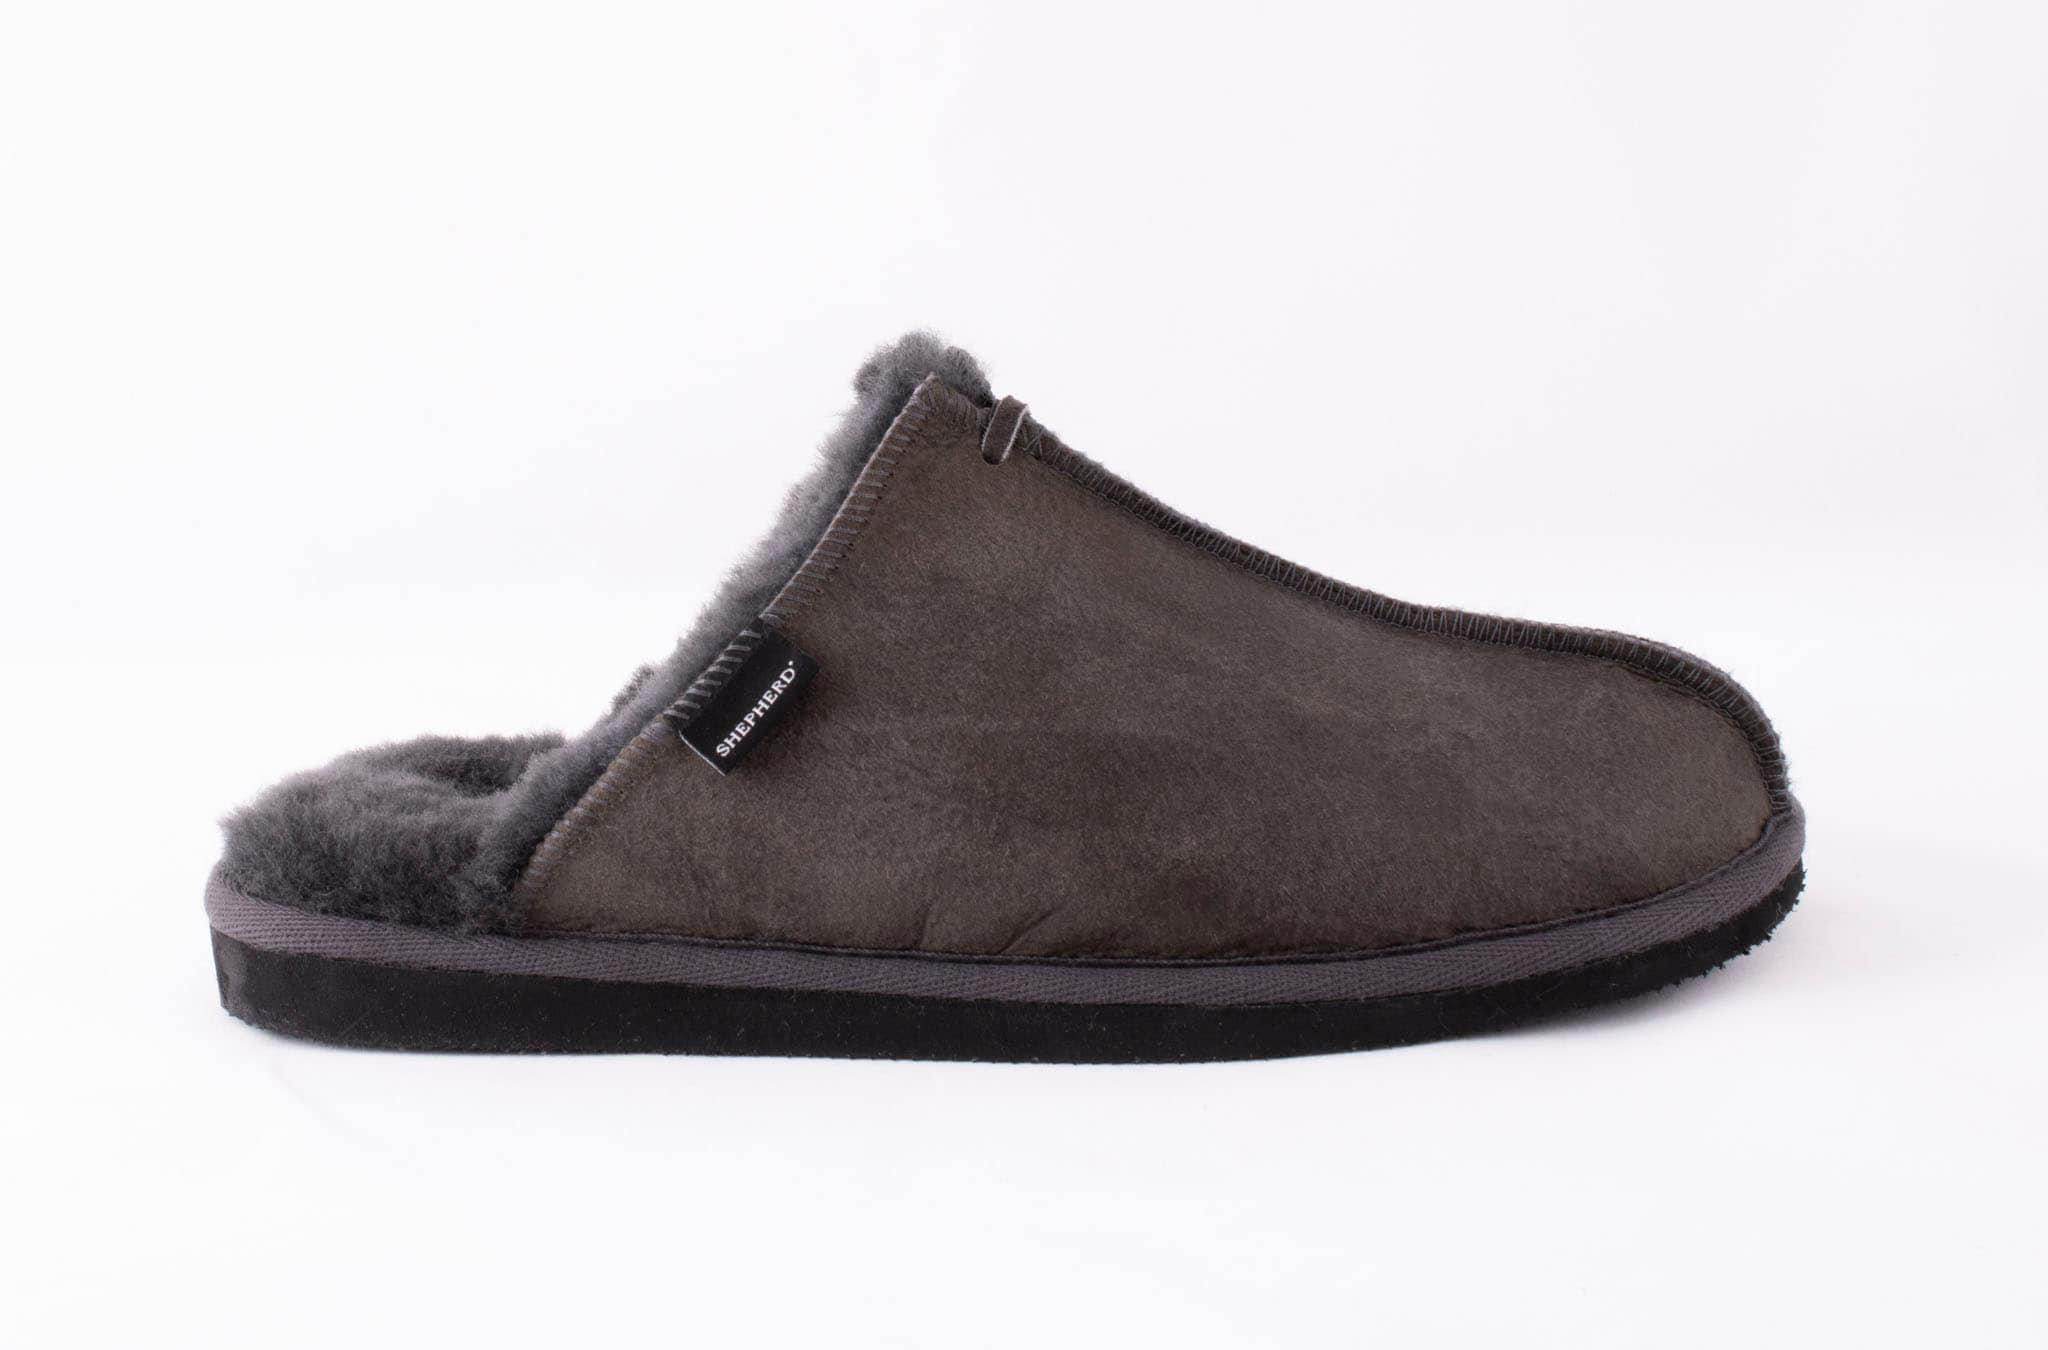 Shepherd Hugo slippers